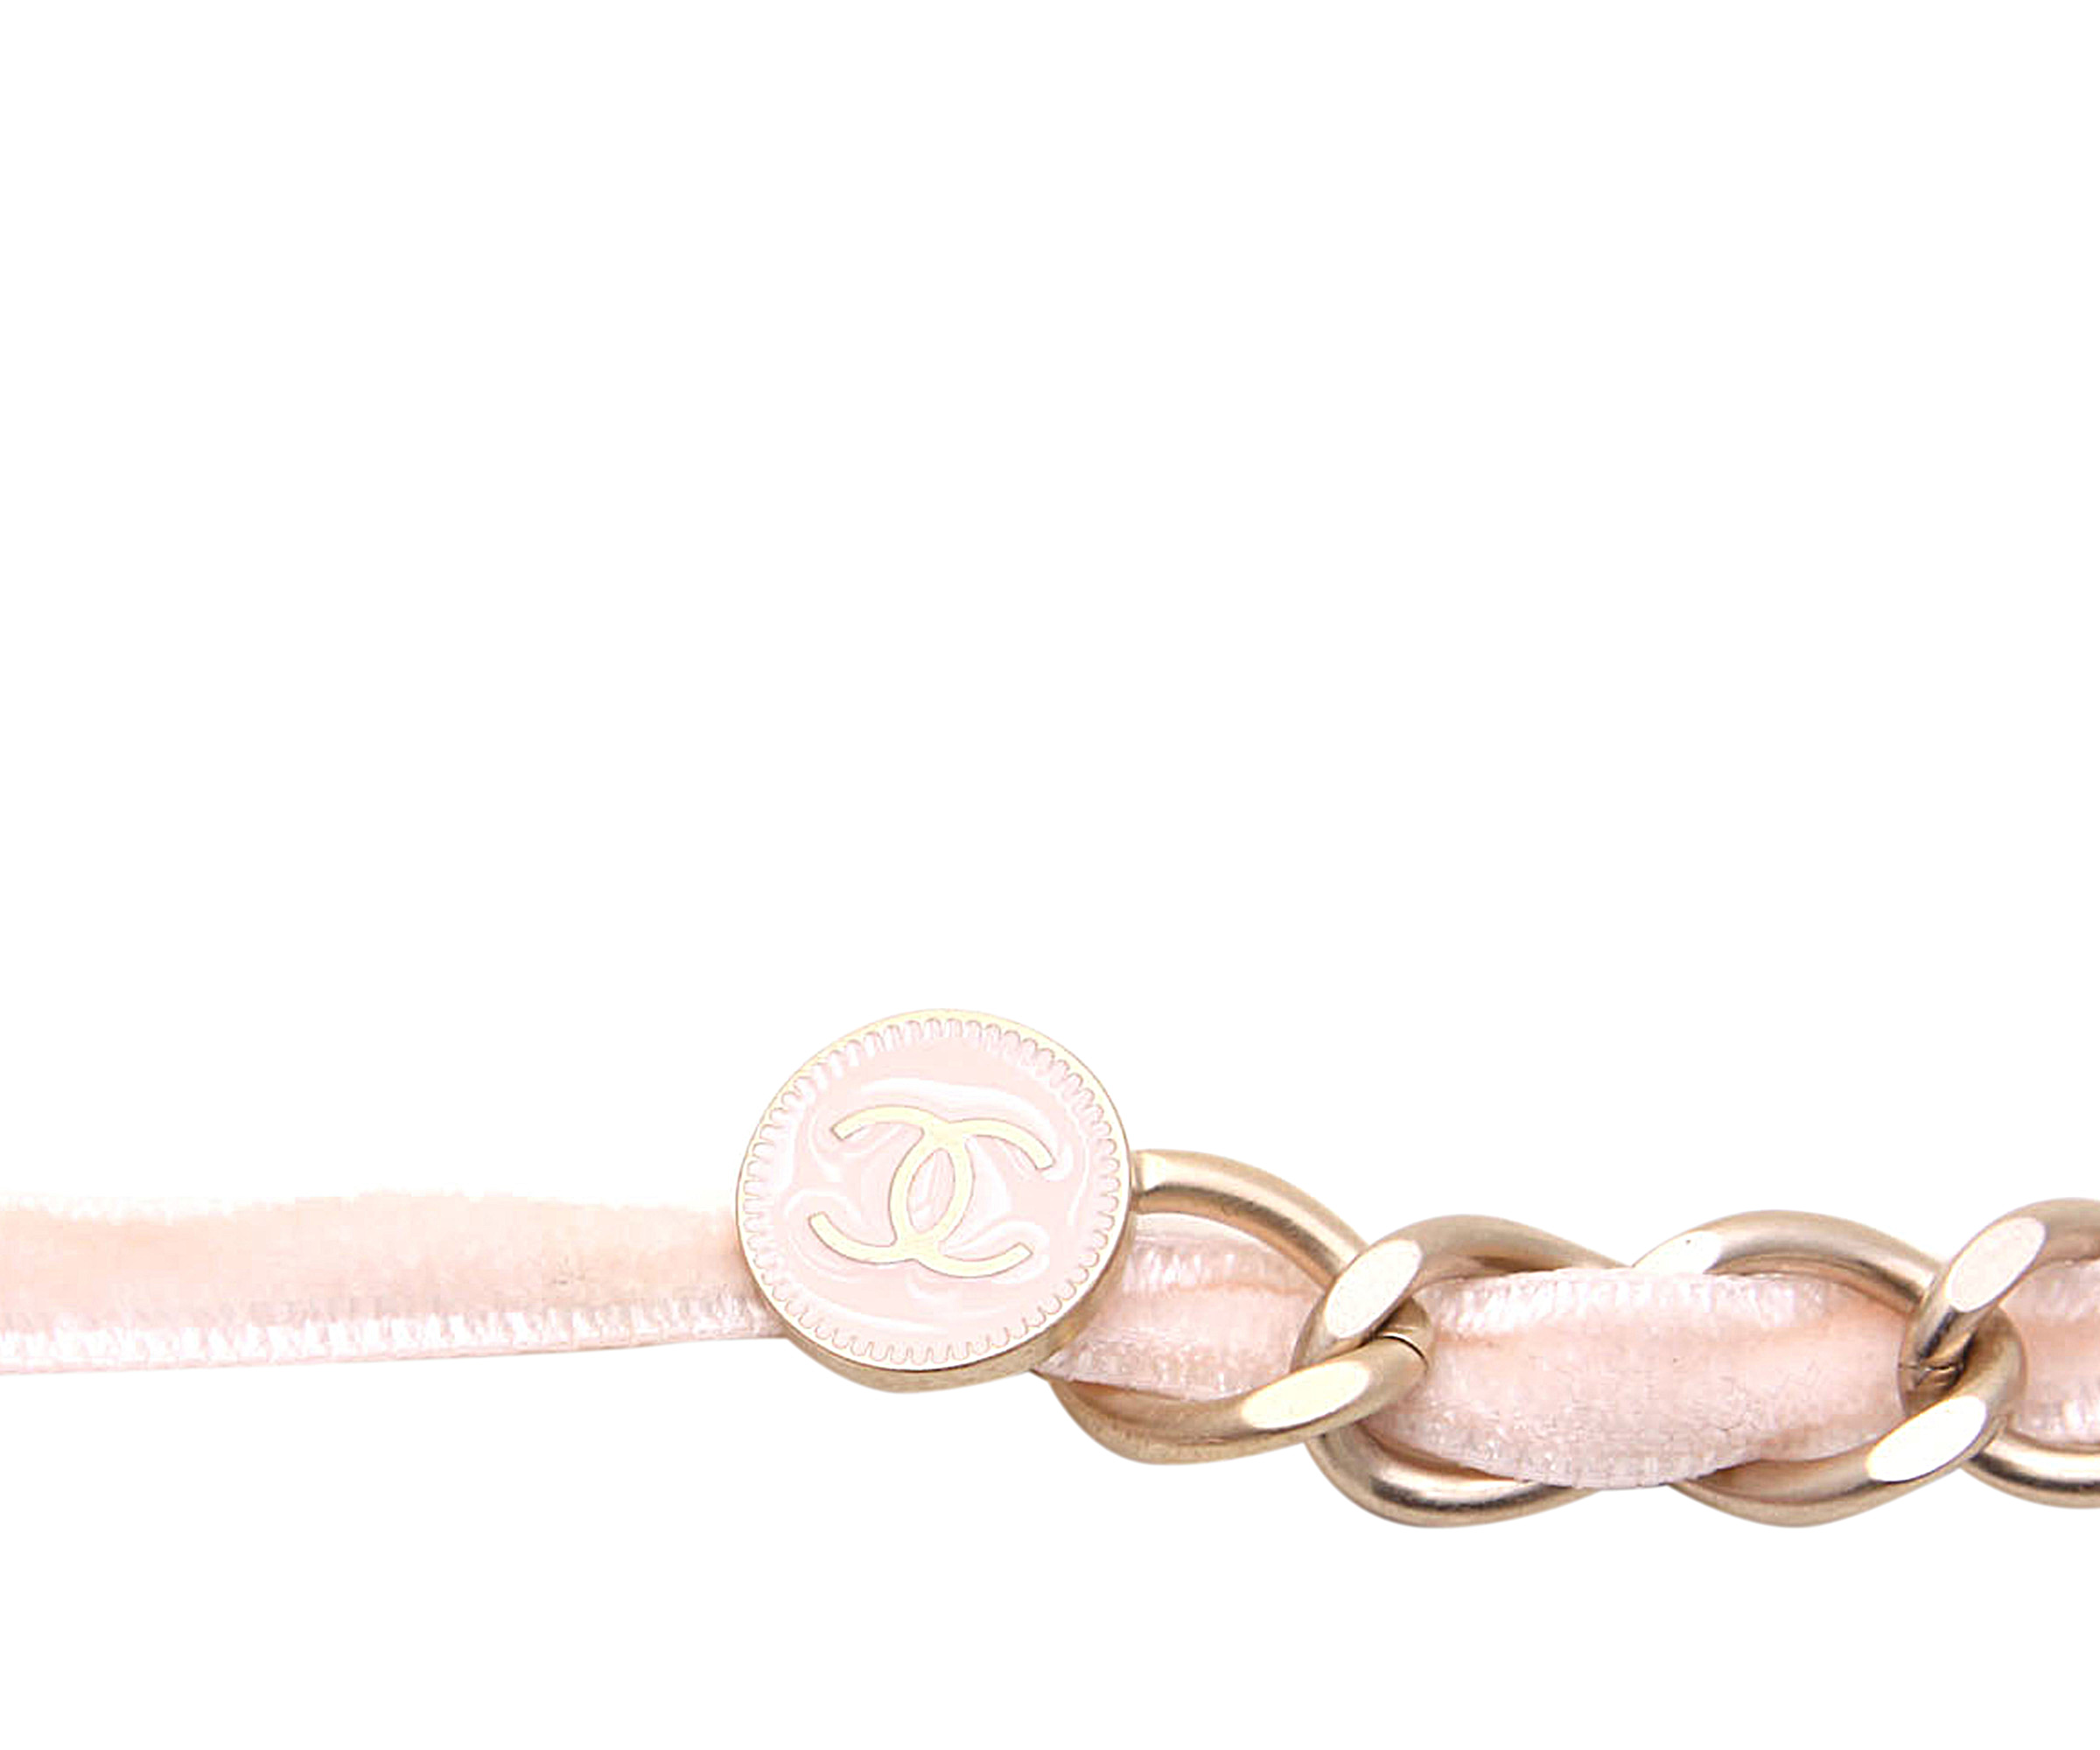 Chanel Pink Leather and Chain Camellia Belt